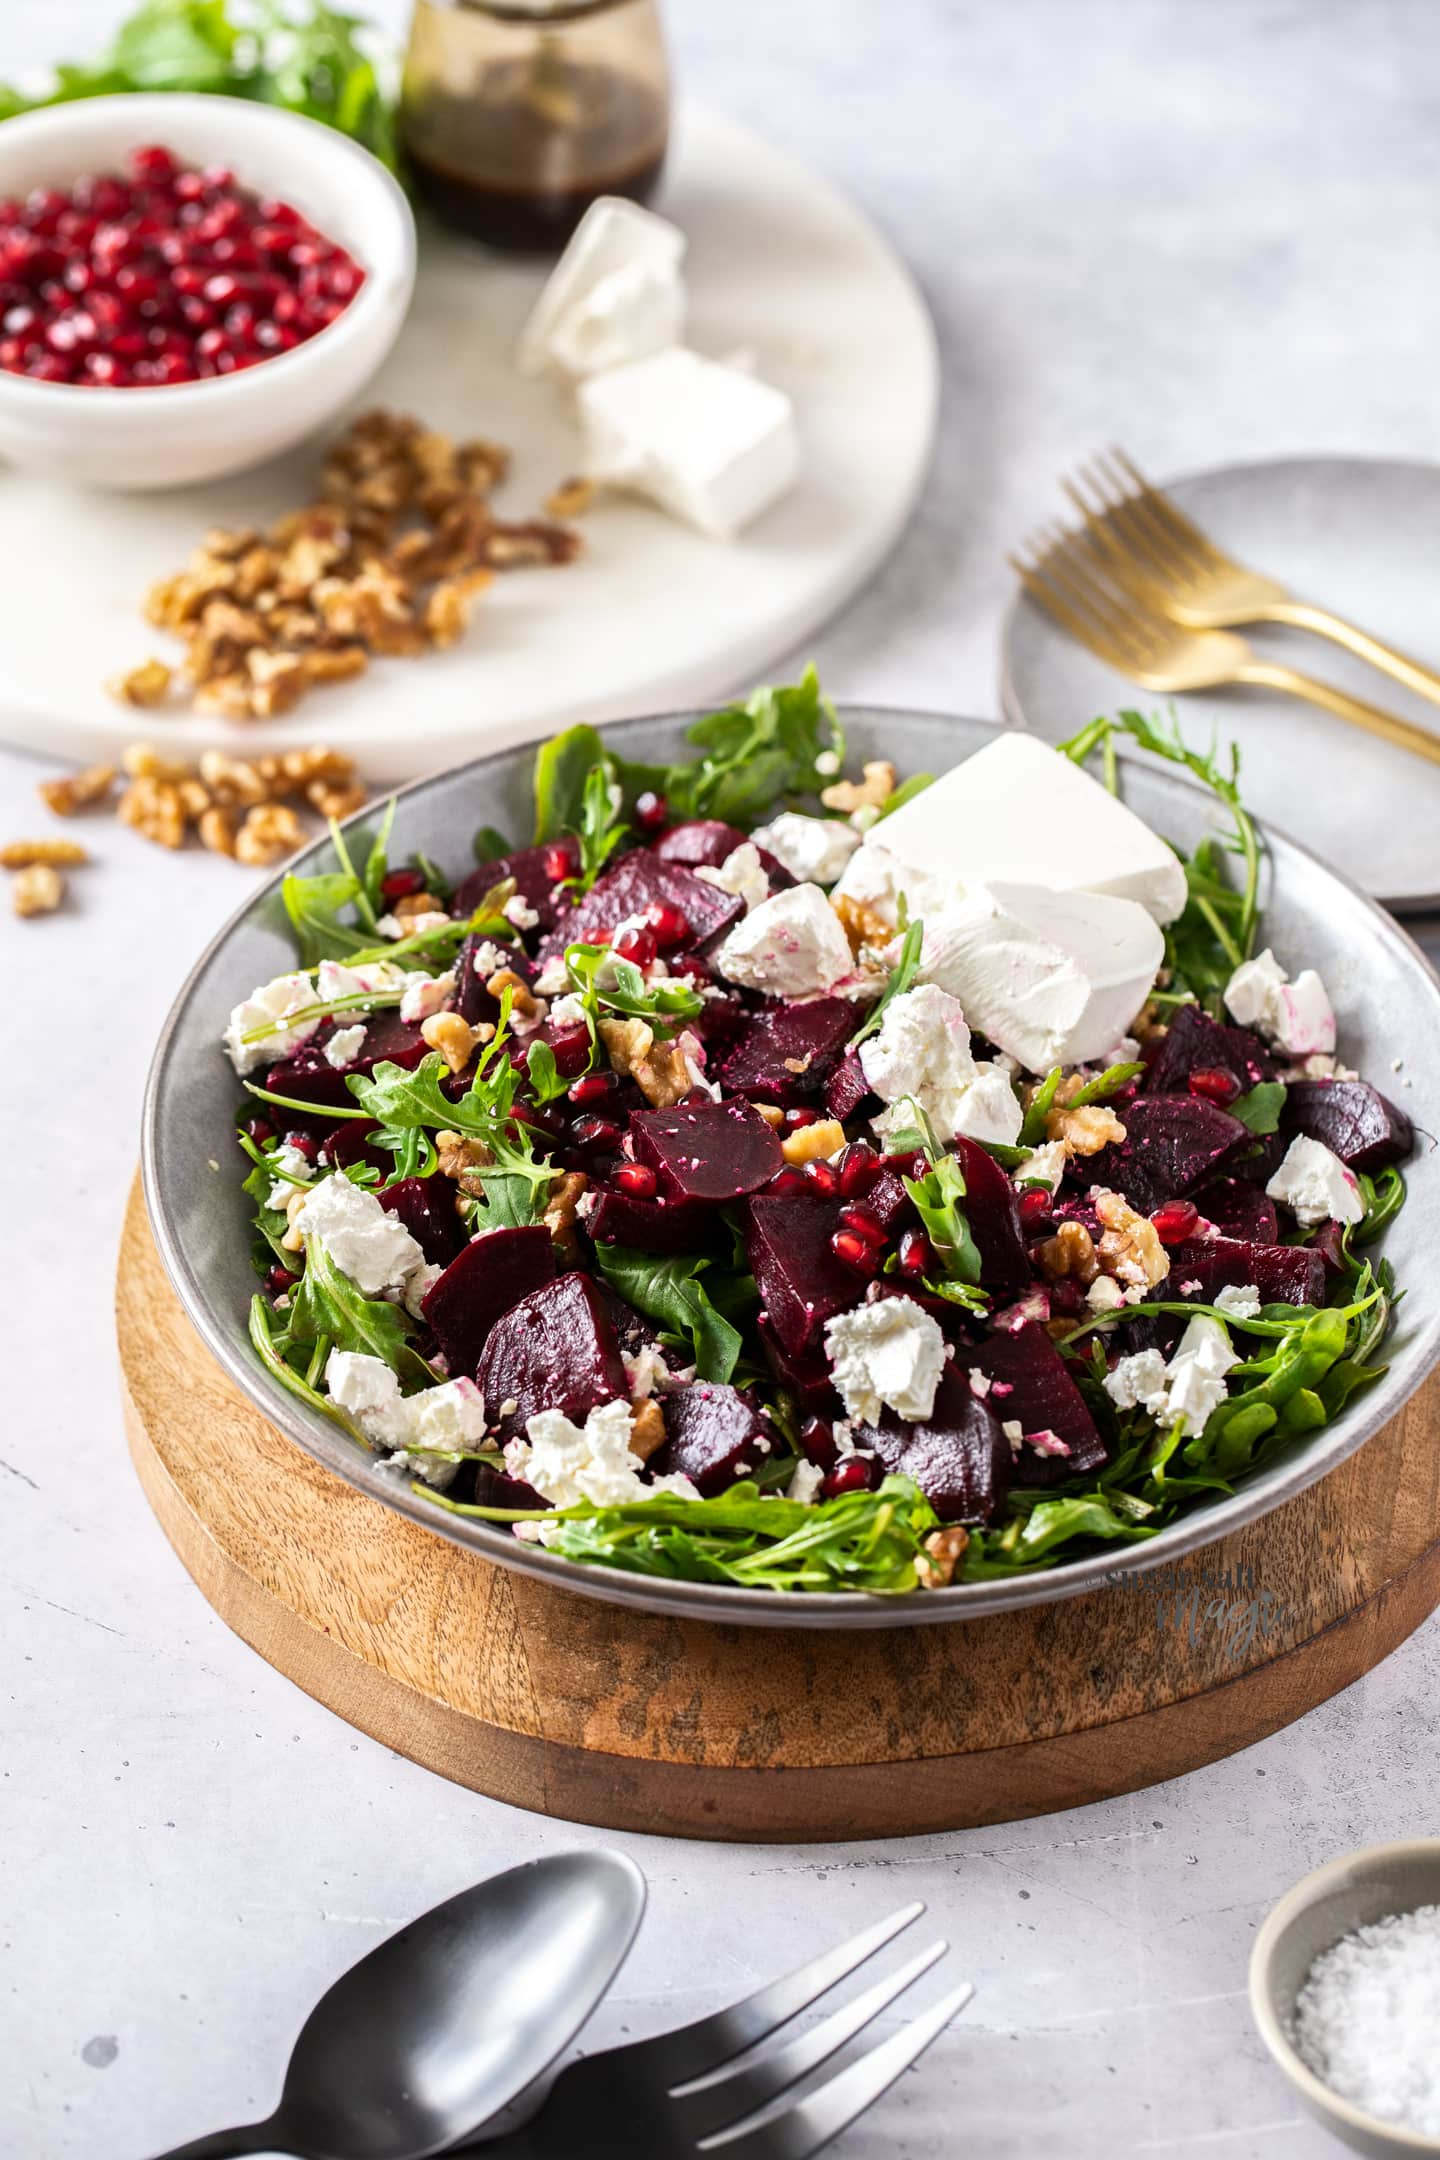 Beetroot, feta and salad leaves in a grey bowl on a wooden platter